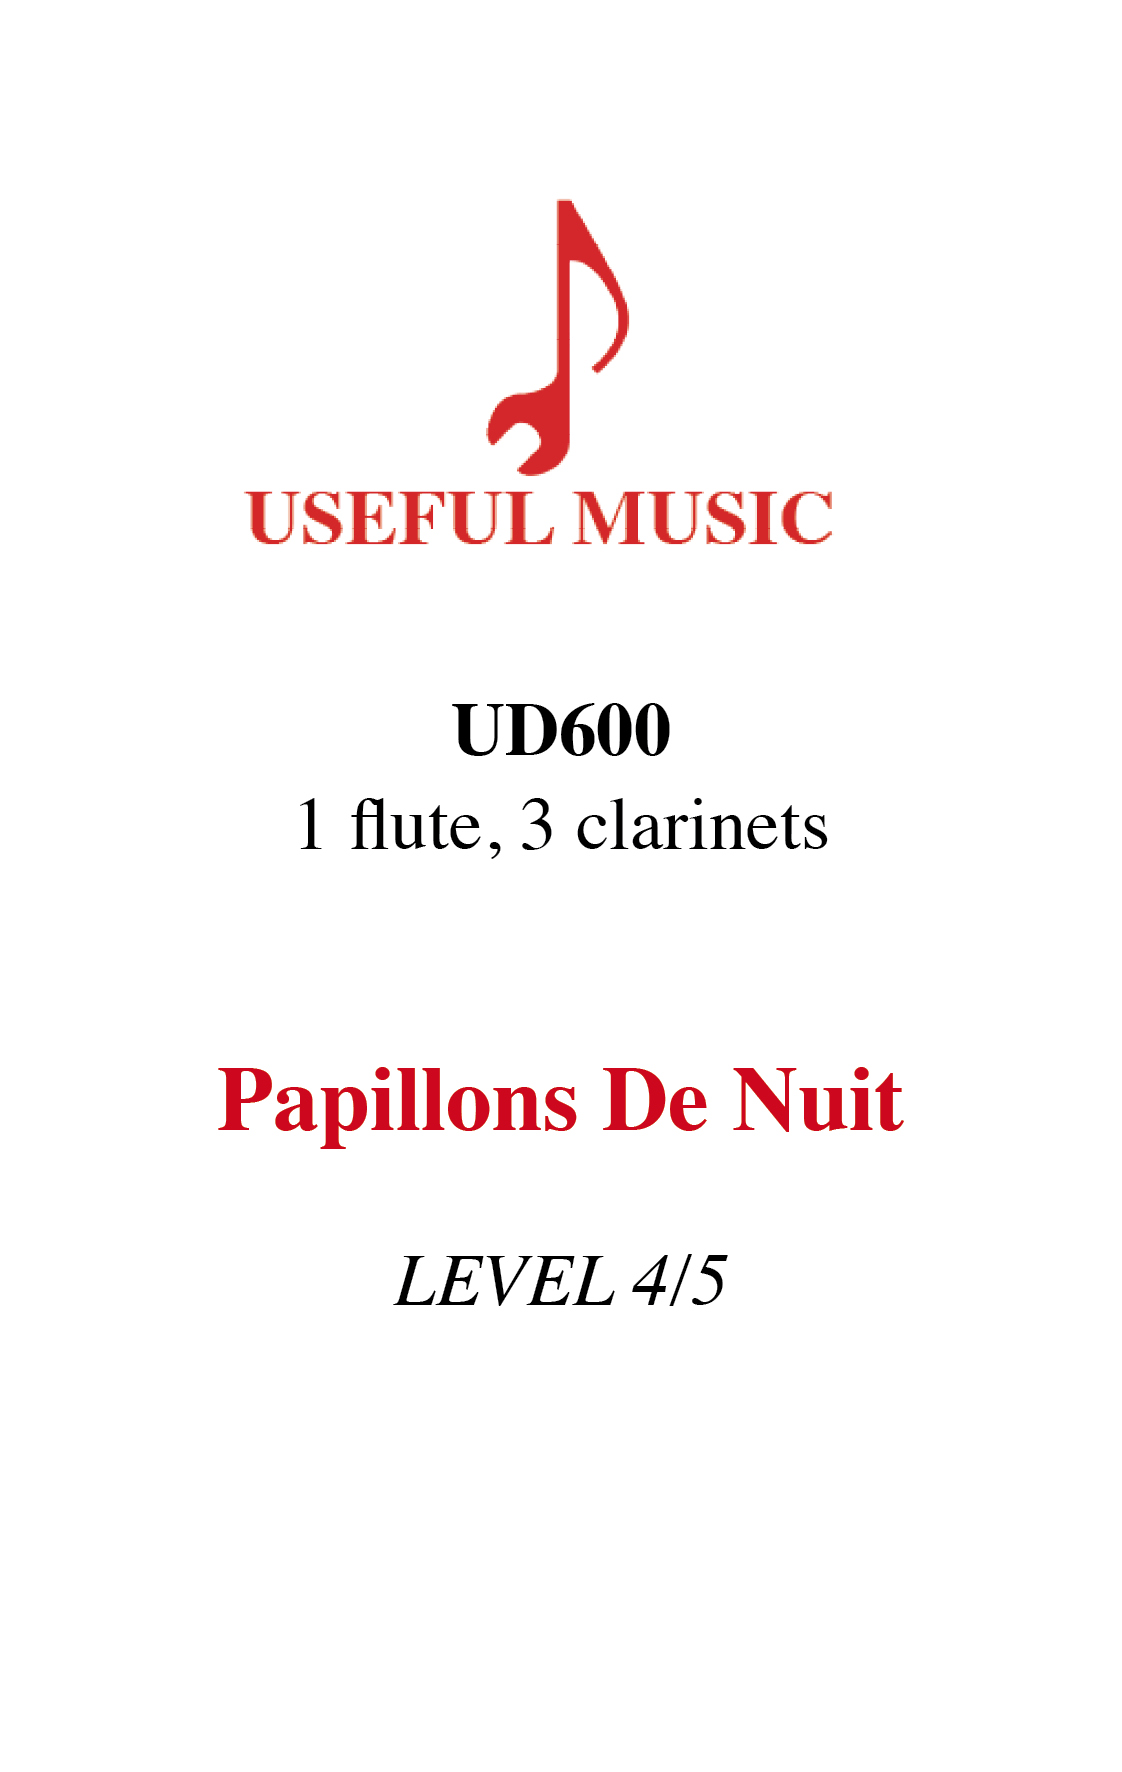 Papillons de Nuit - flute and 3 clarinets